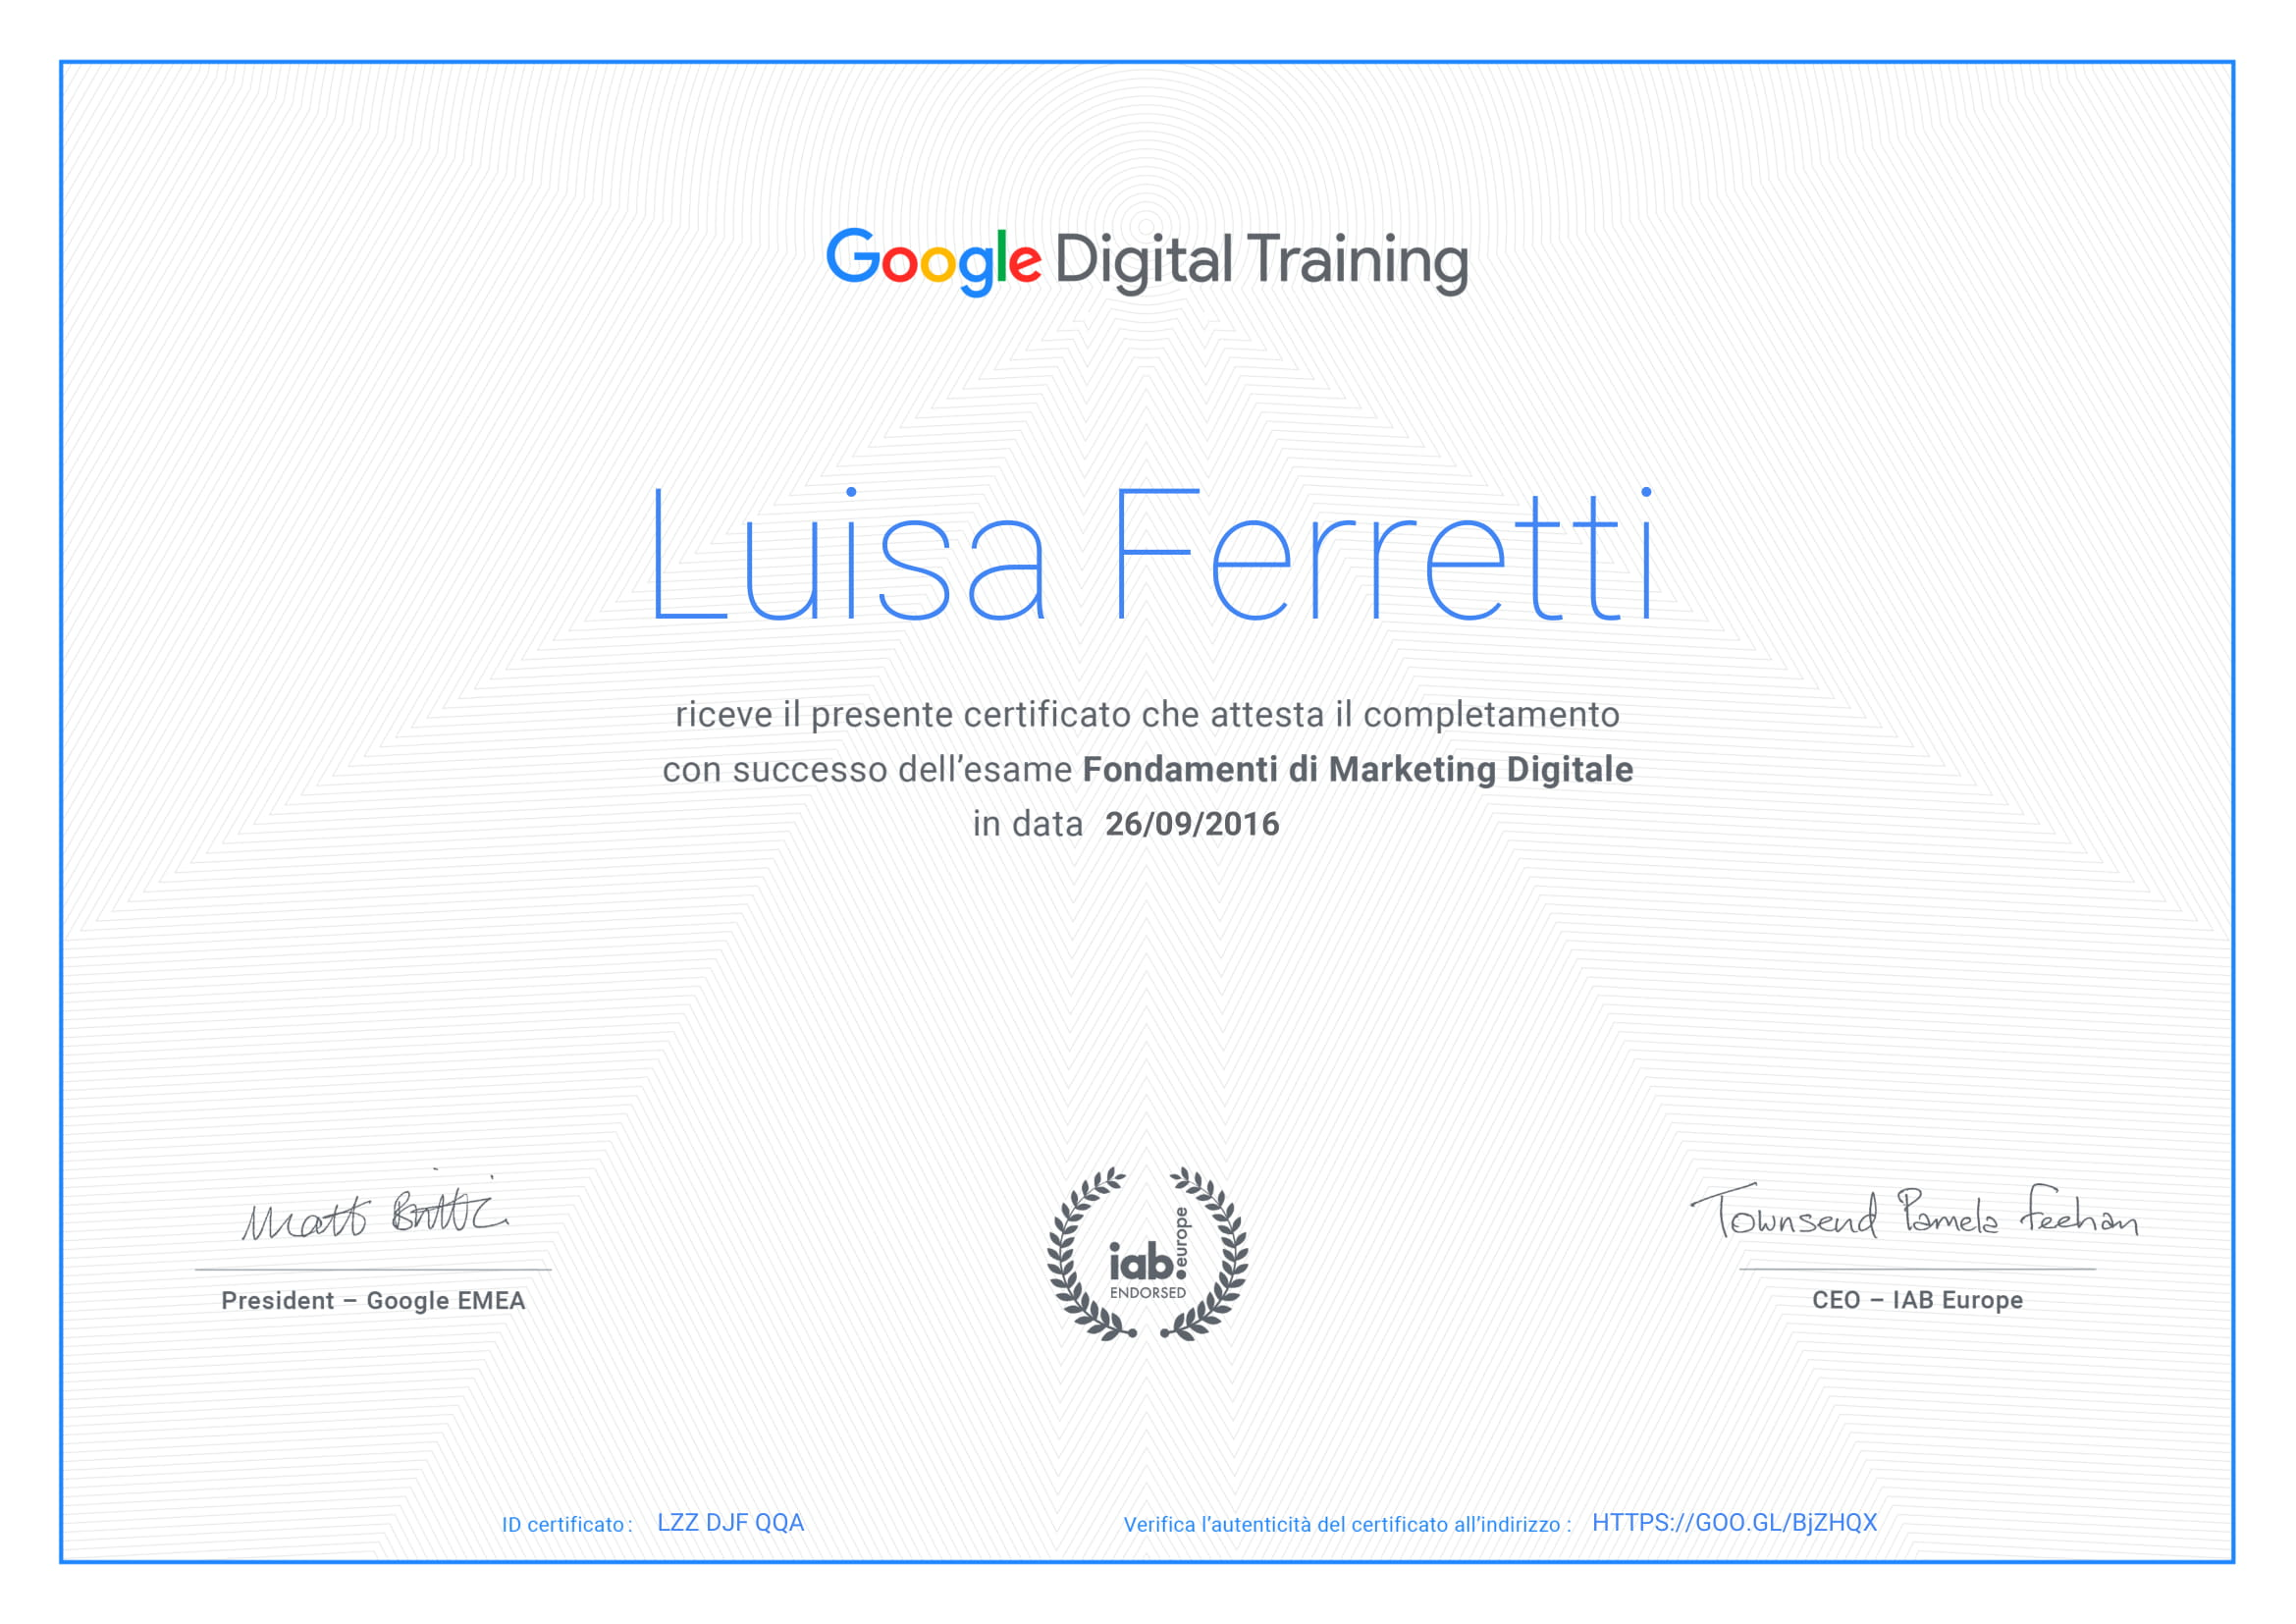 https://learndigital.withgoogle.com/digitaltraining